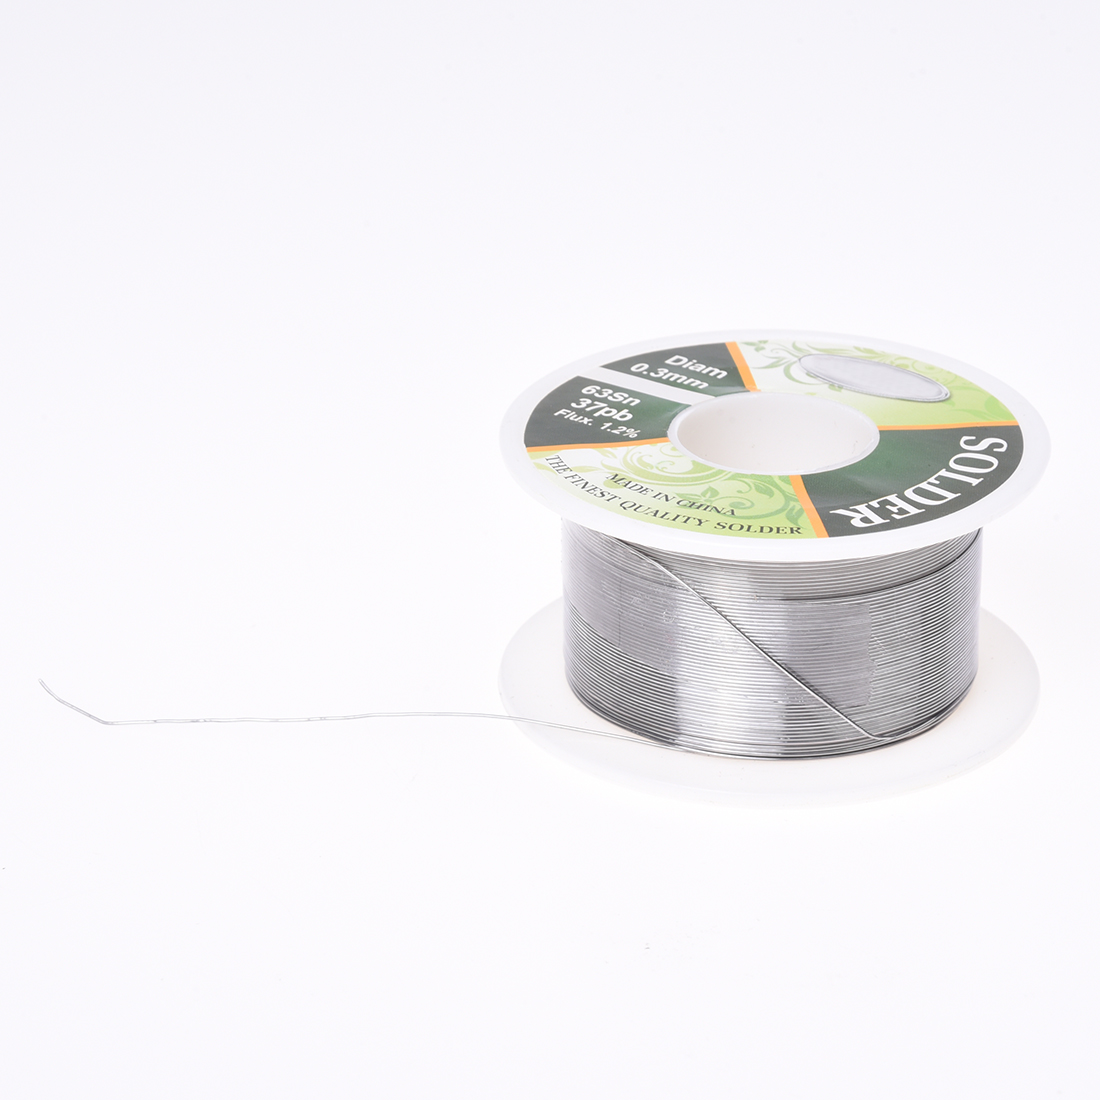 Promotion! Ya Xun - The Finest Quality Solder 0.3mm Dia,1.2% Flux,63Sn/37Pb, Wire Reel